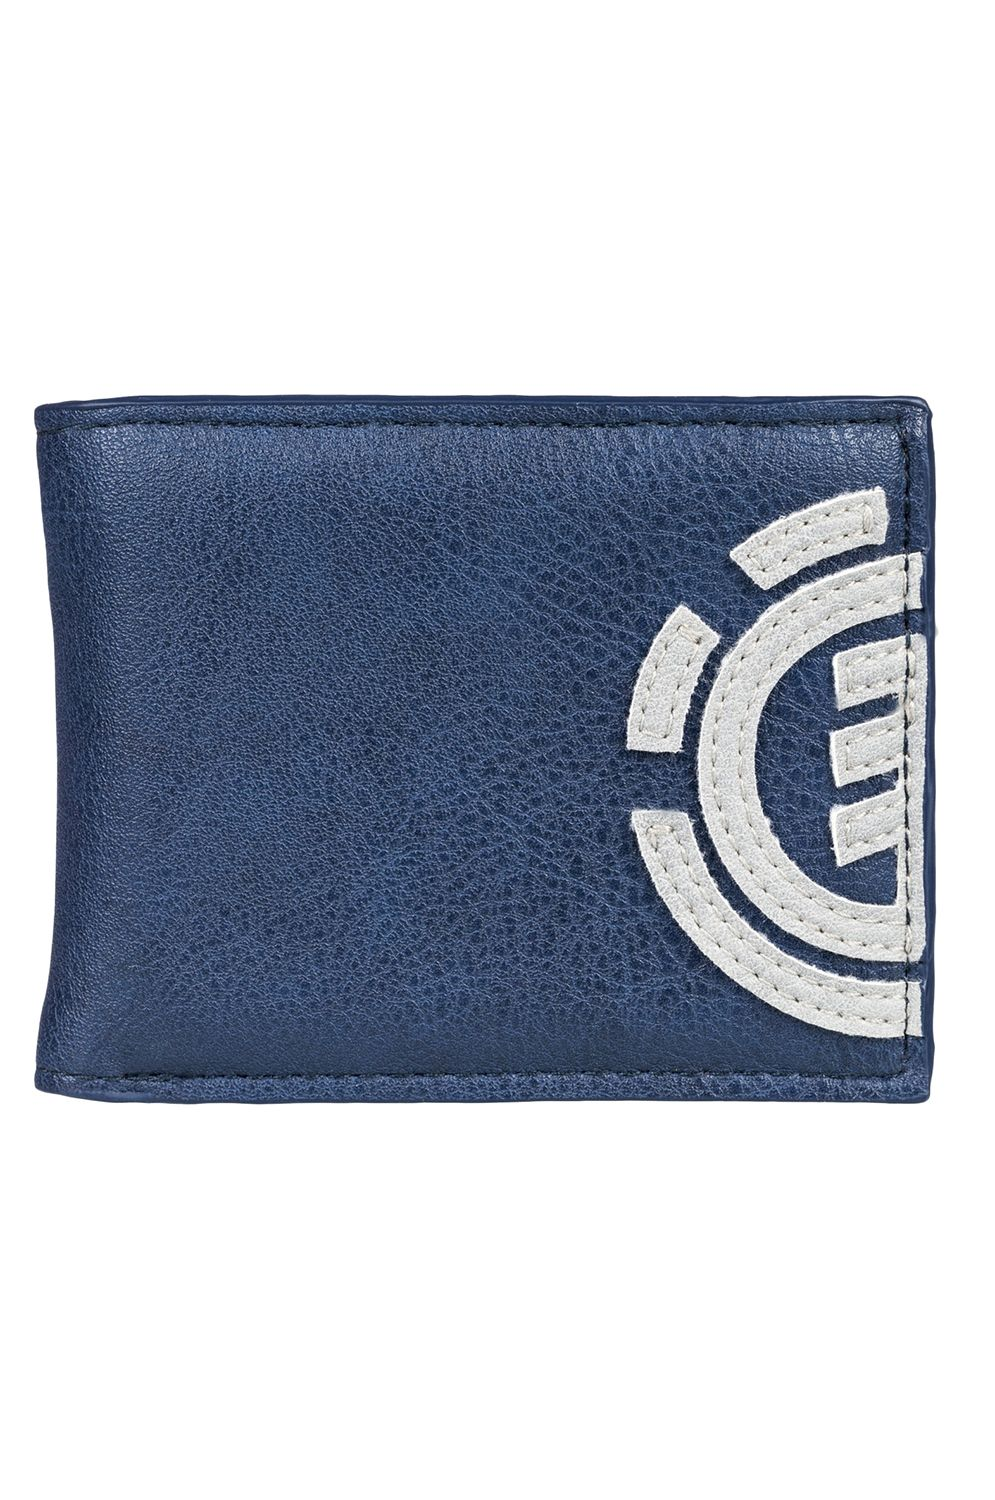 Carteira PU Element DAILY WALLET Indigo